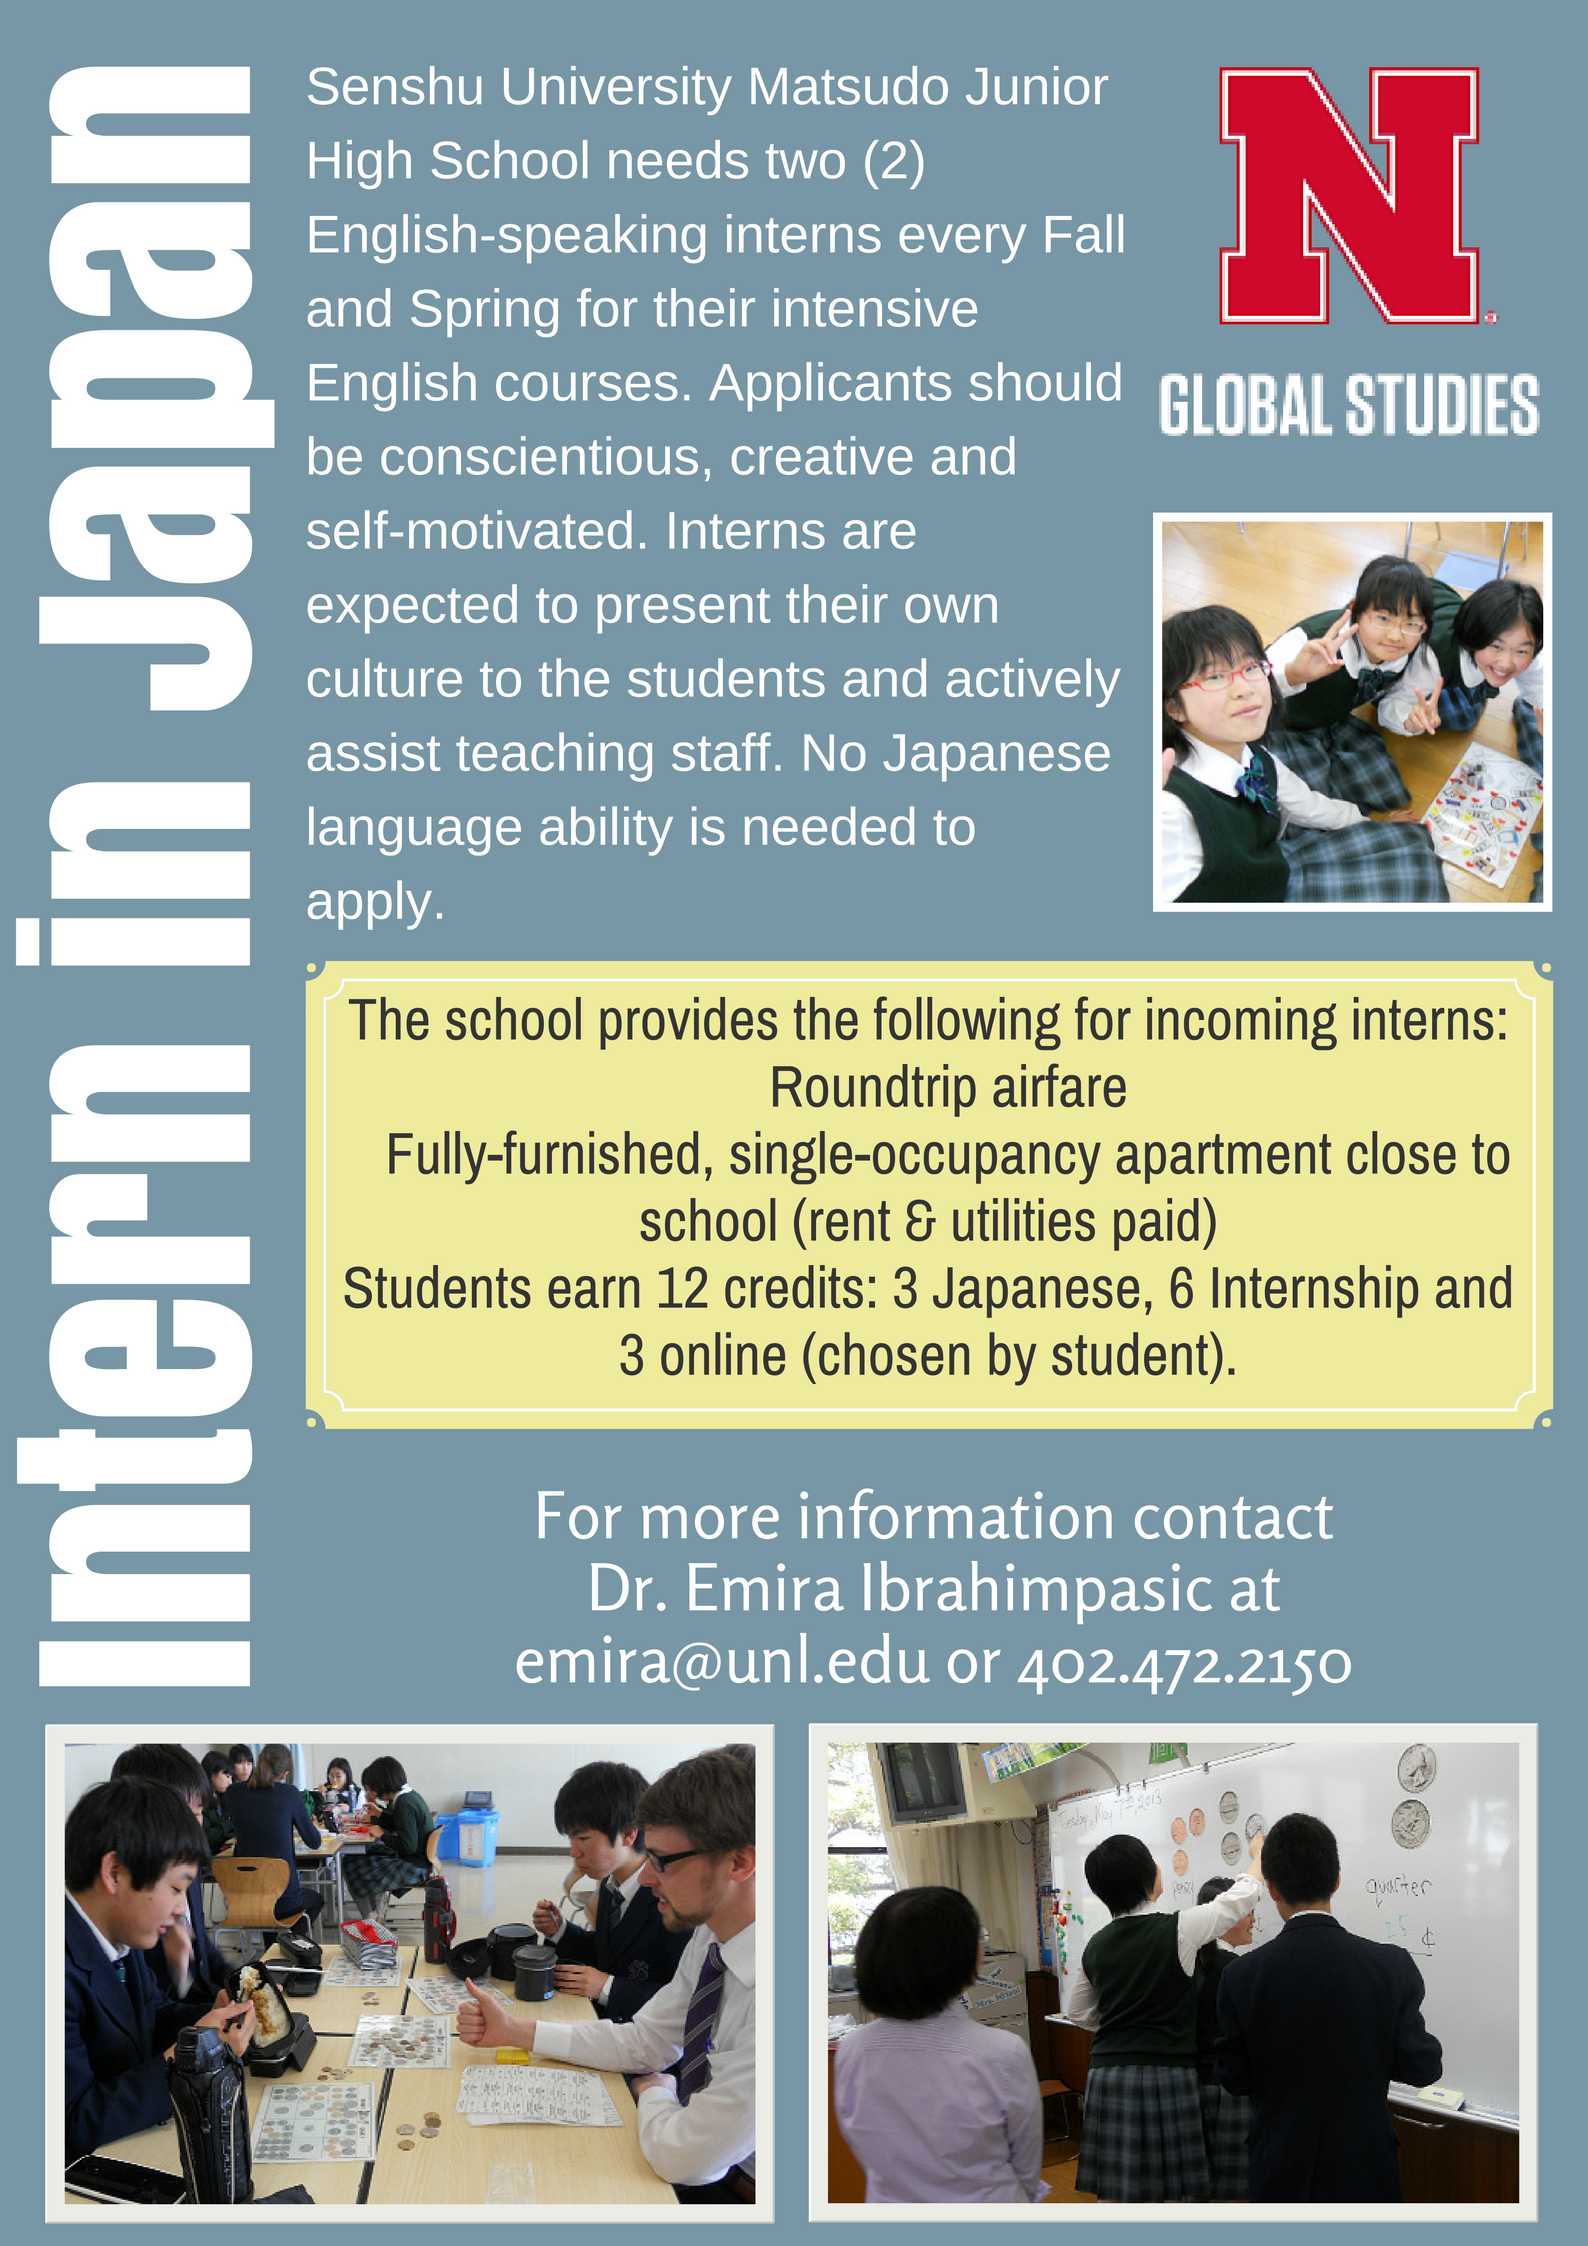 Intern in Japan during Spring 2019